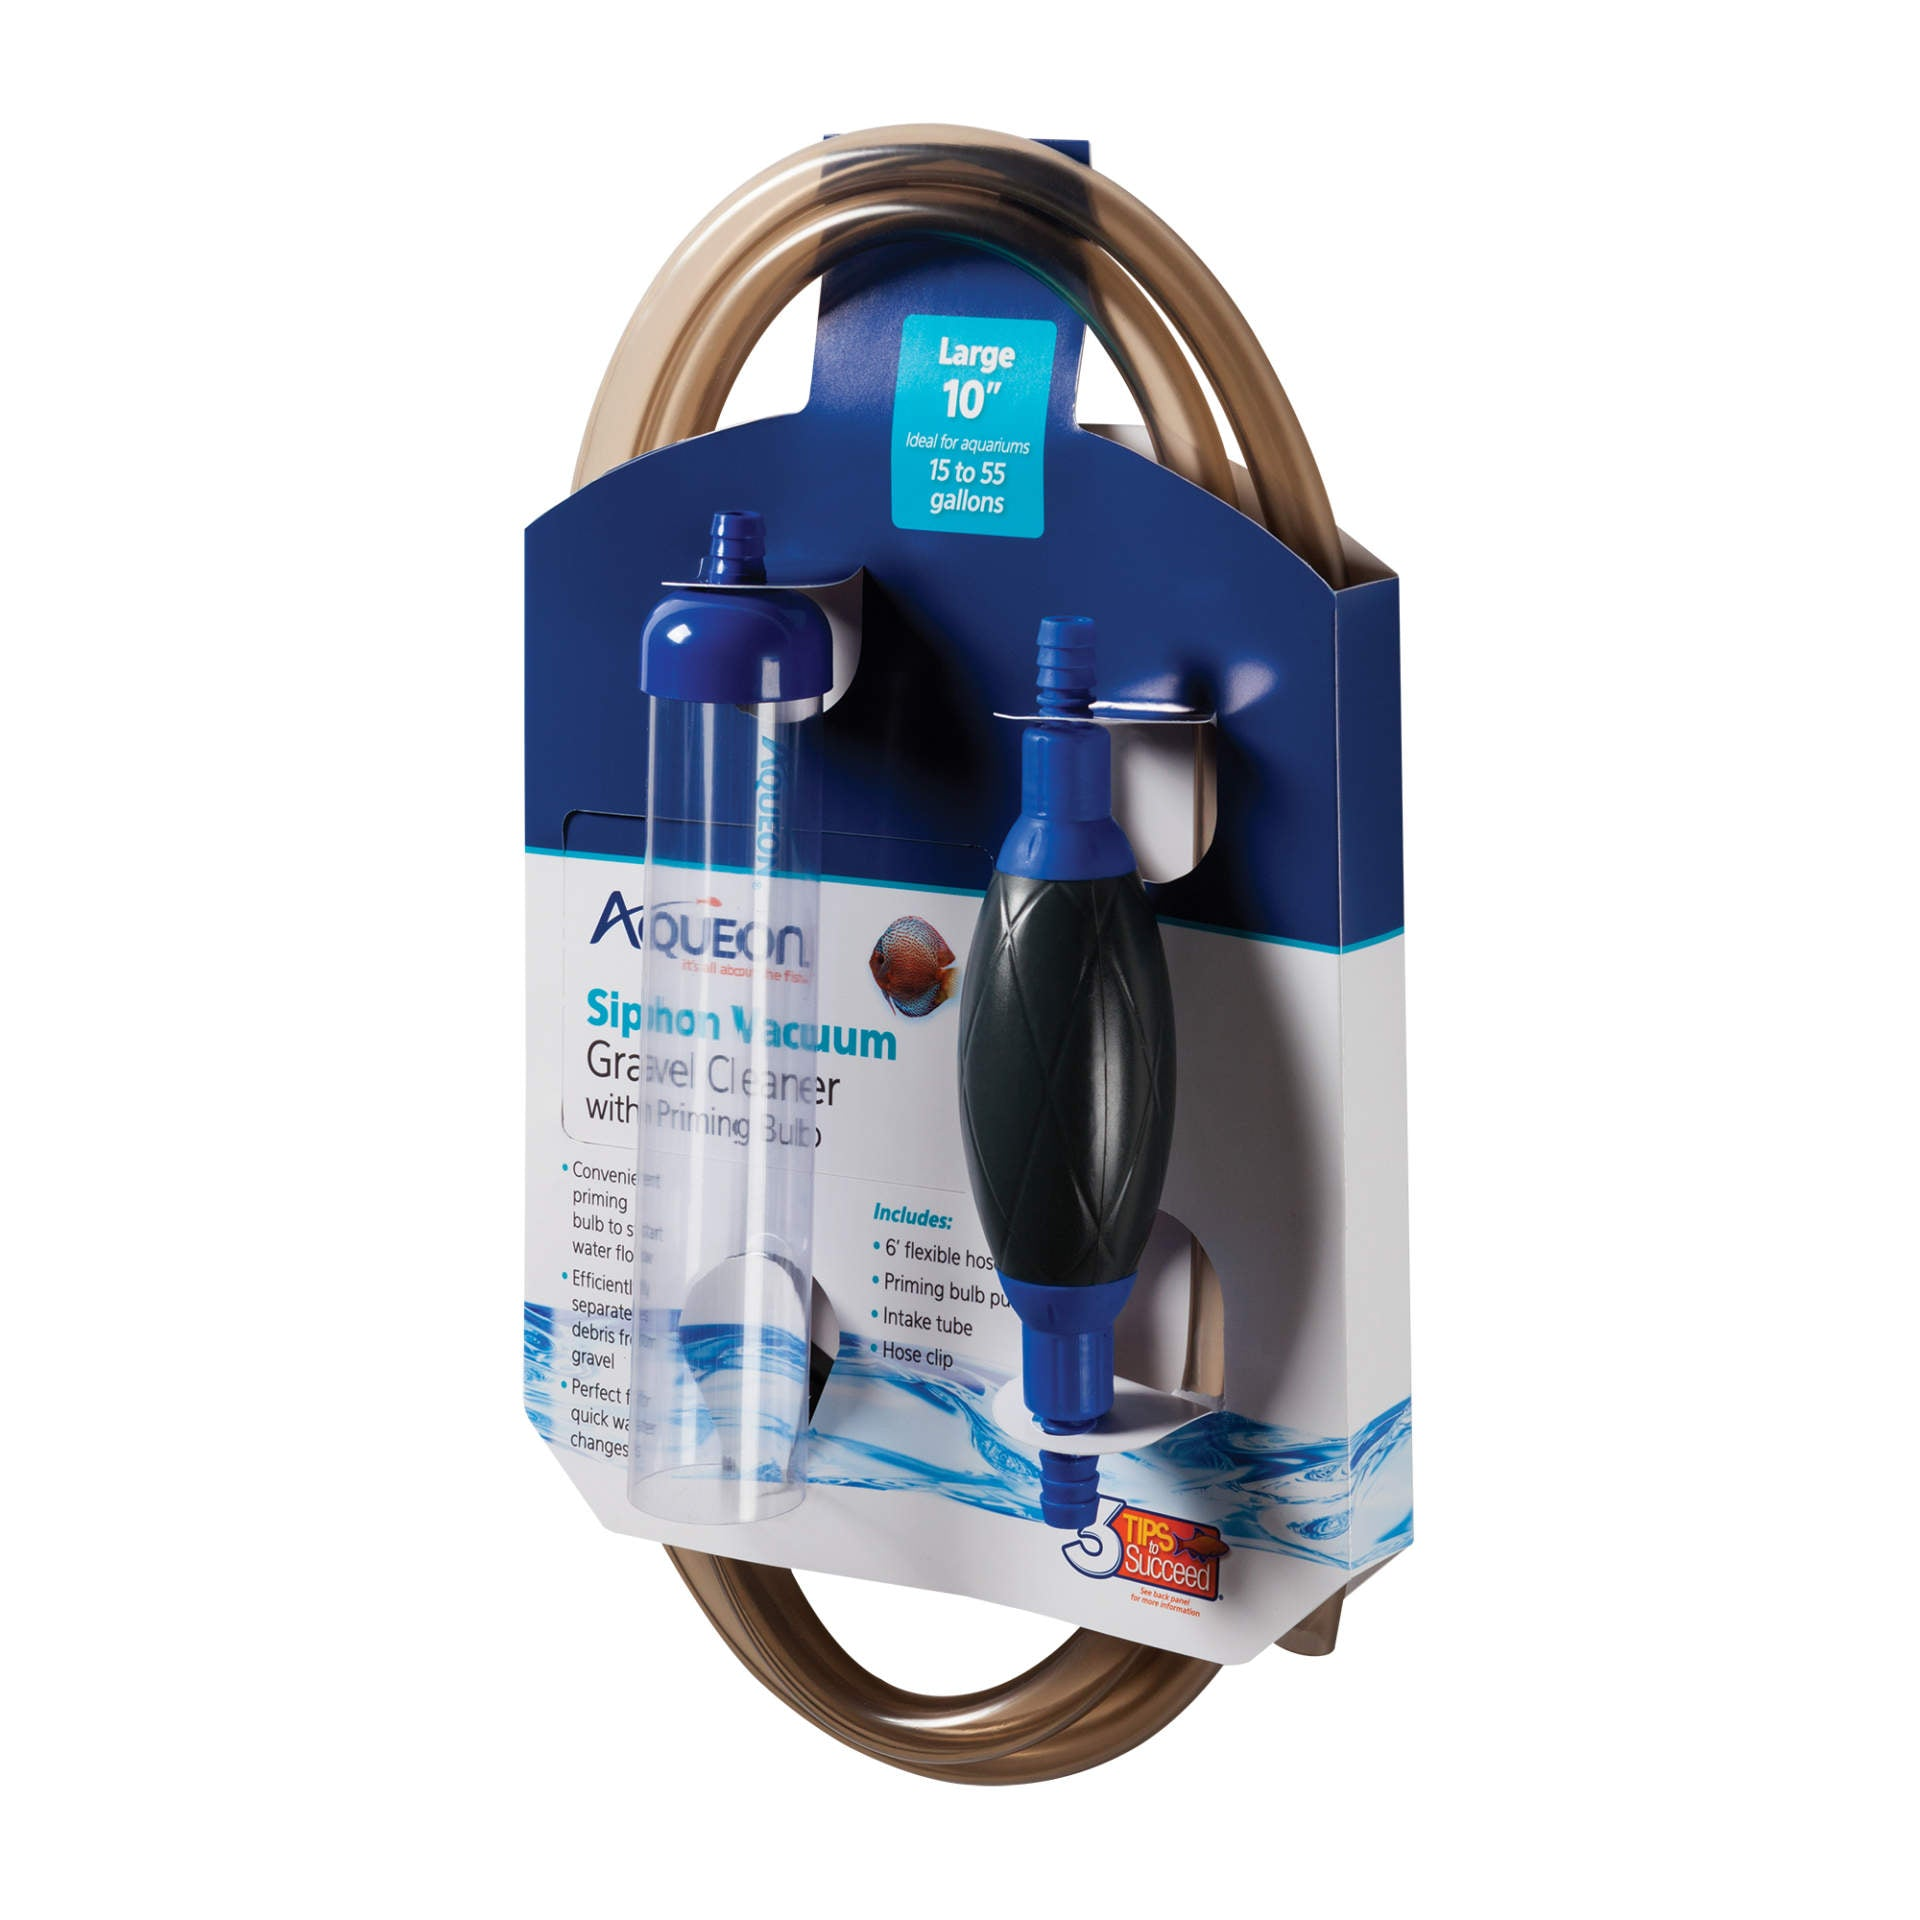 """Aqueon Siphon Vacuum Gravel Cleaner With Bulb Large 9"""" X 4"""" X 19.3"""""""